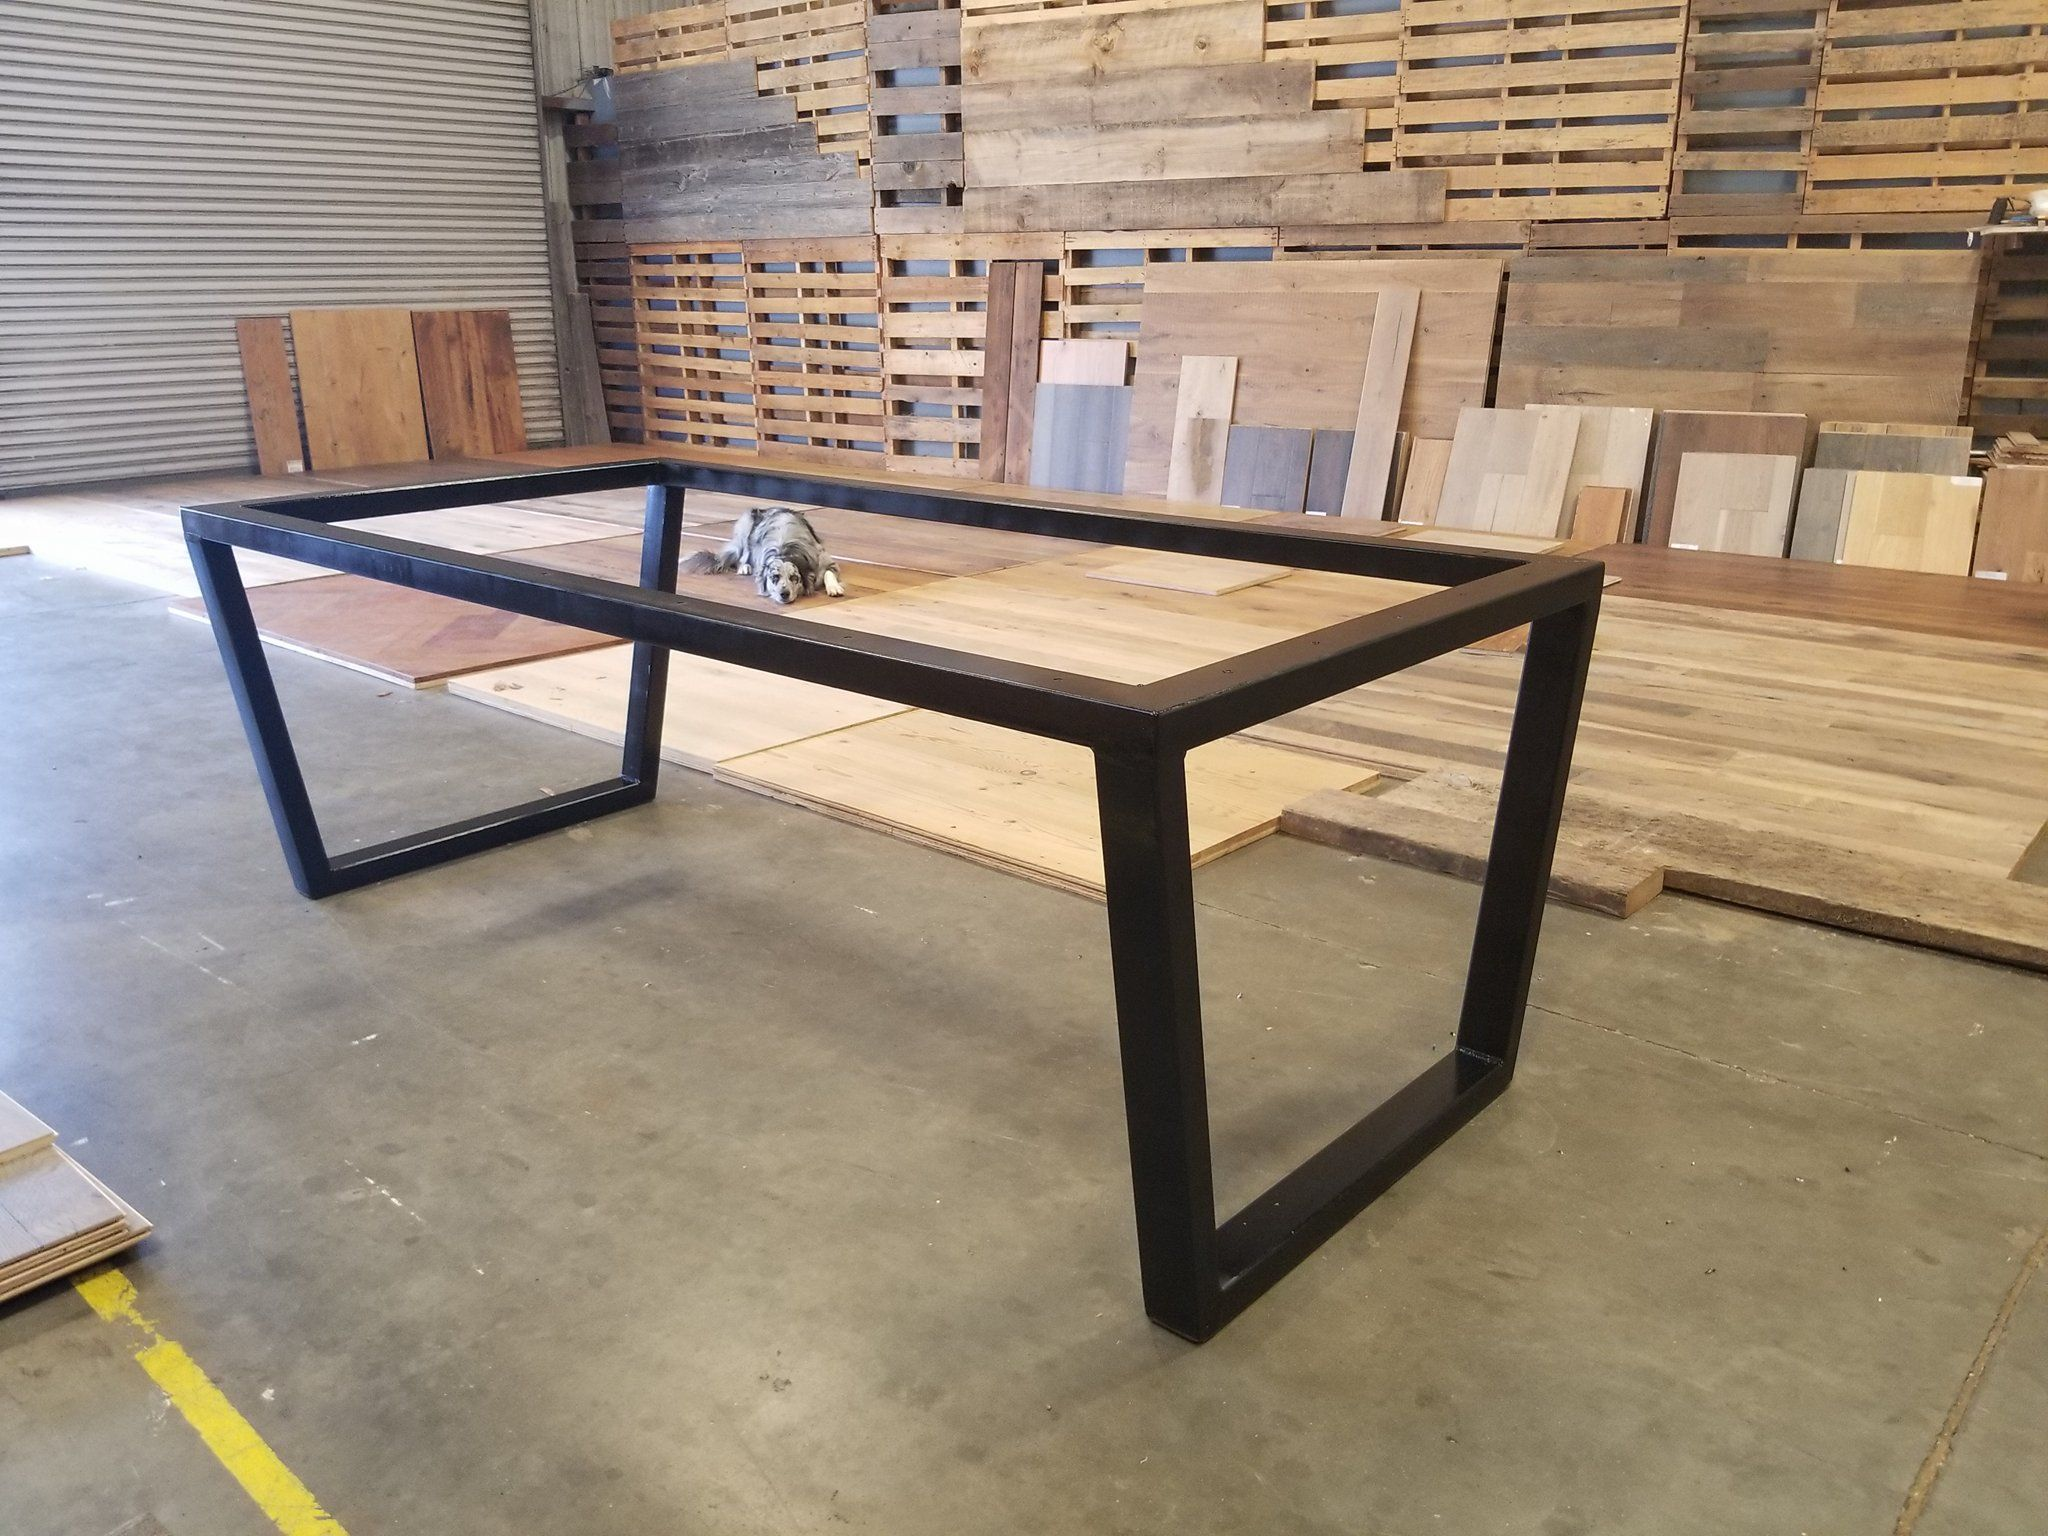 Live Edge Table With Hairpin Legs Live Edge Coffee Table With Metal Legs Rustic Decor Resort Furnitur Coffee Table Wood Rustic Furniture Diy Wood Table Legs